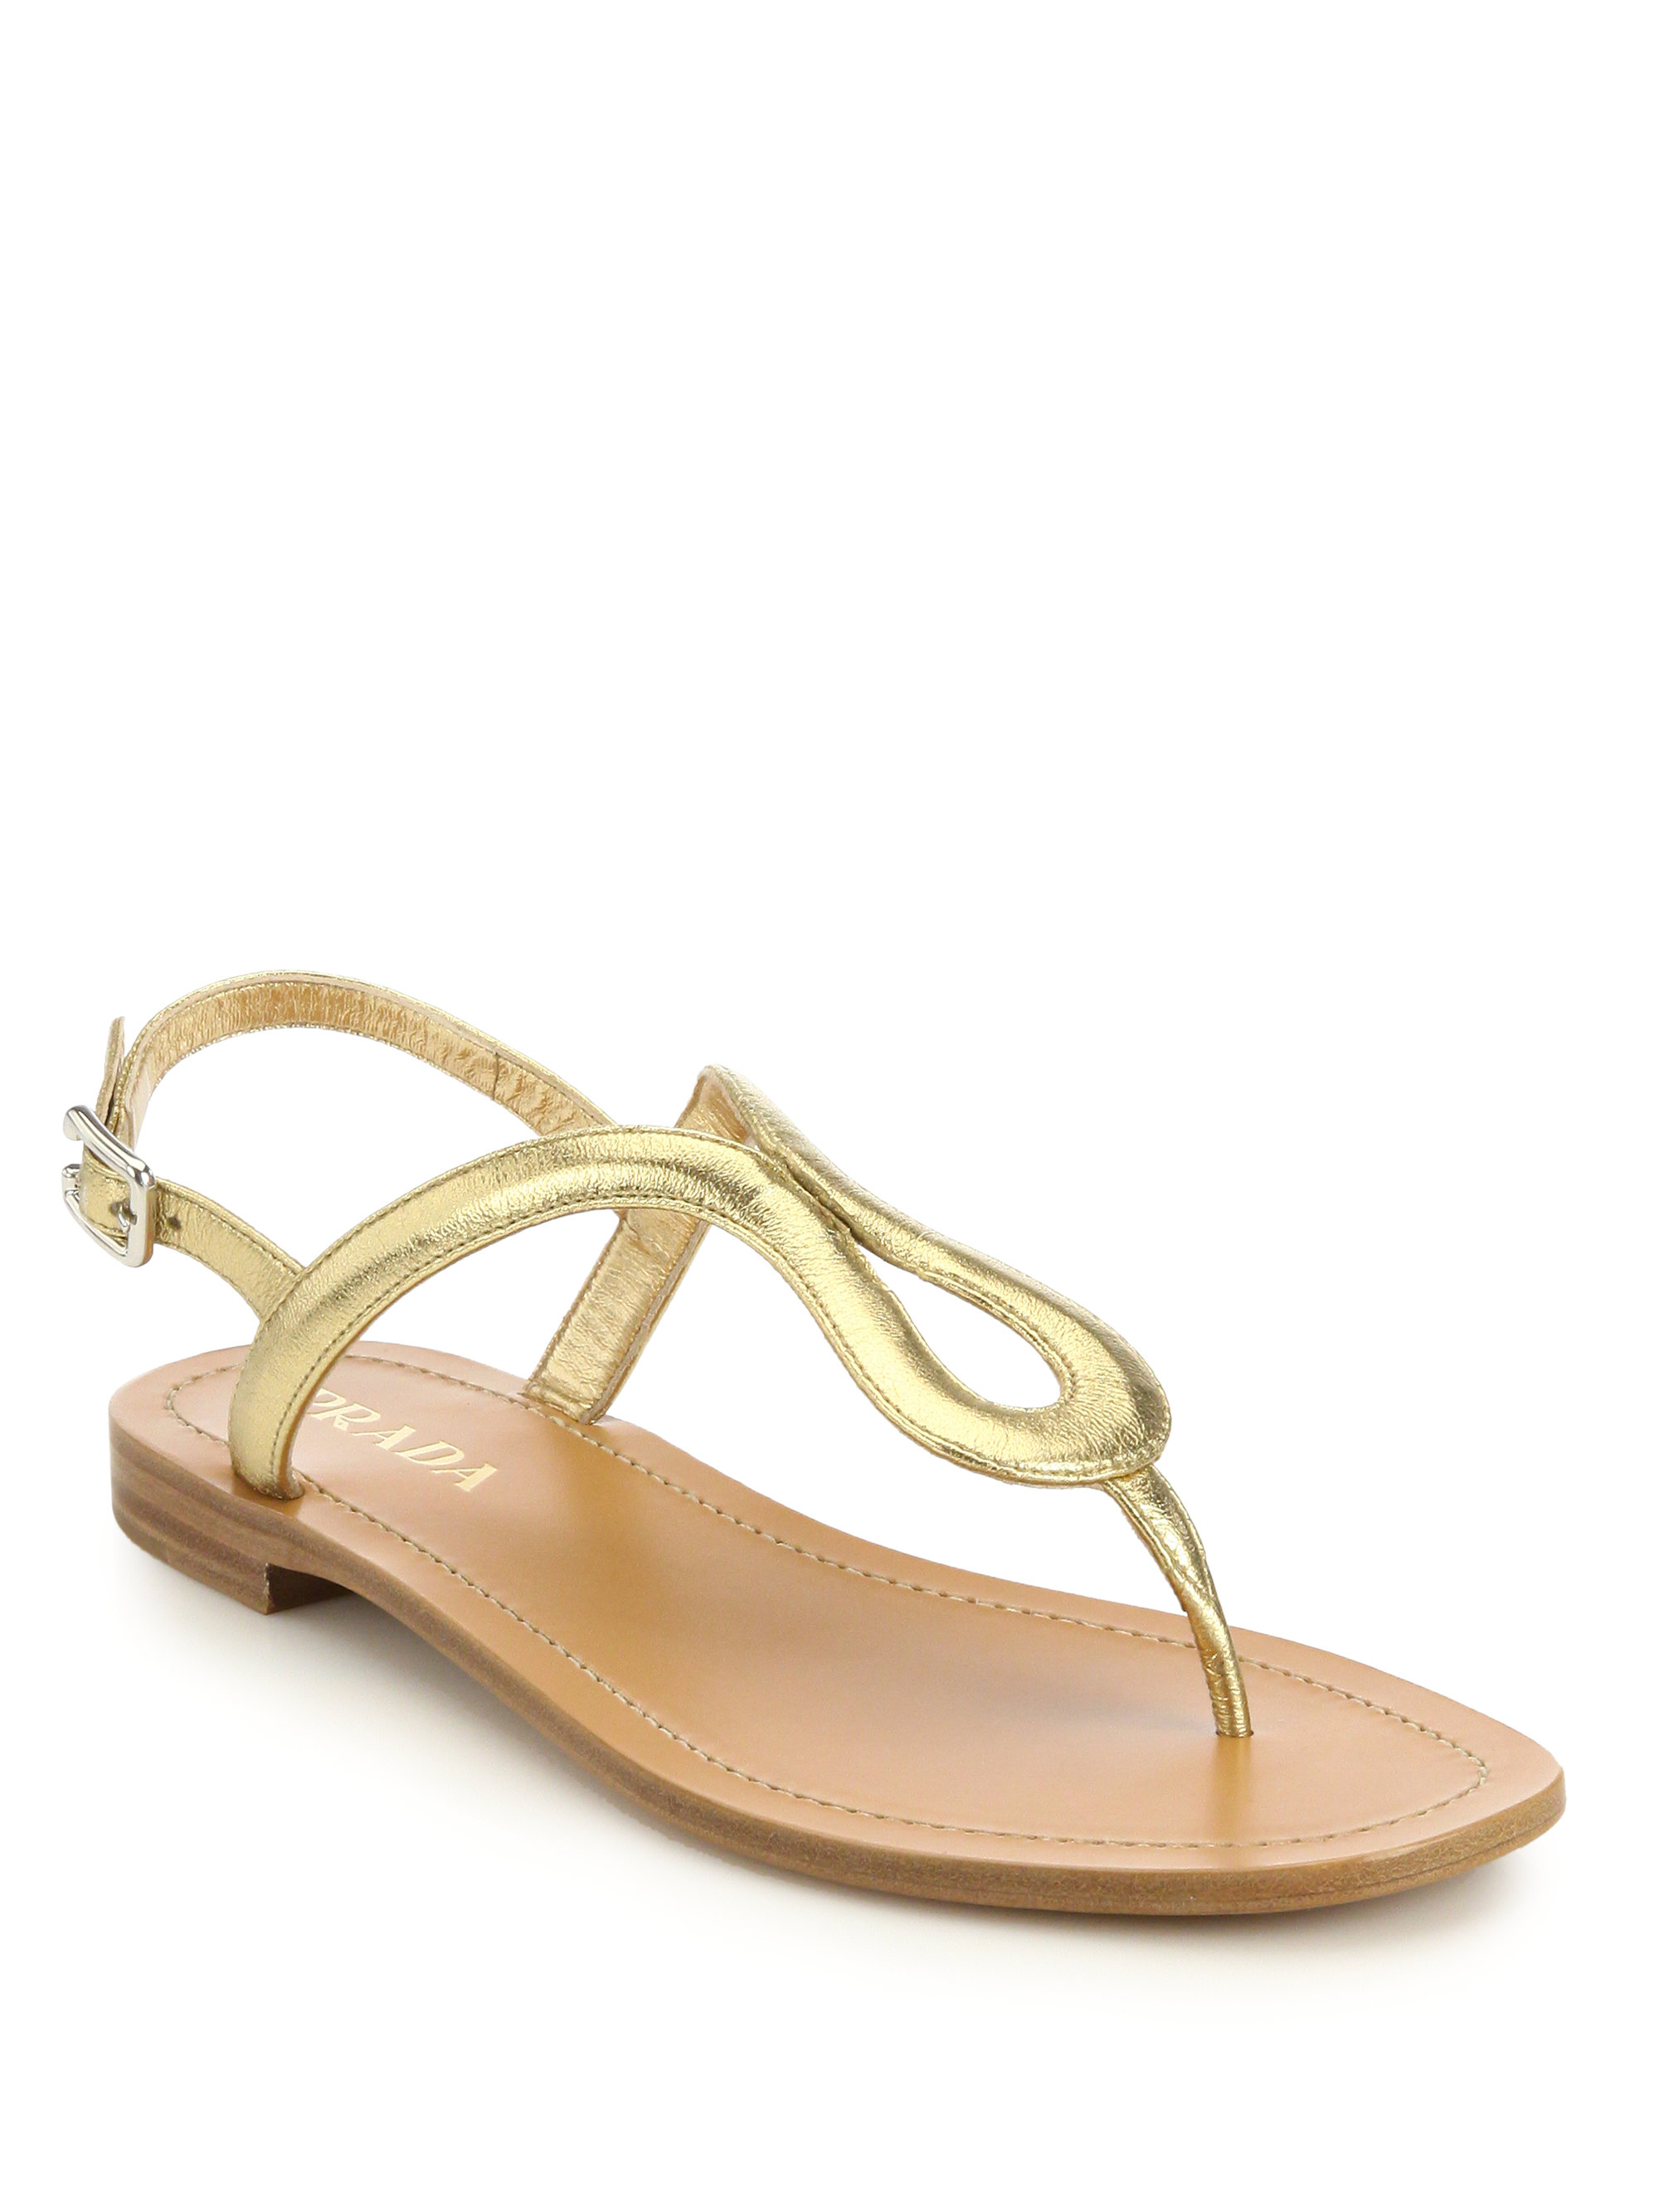 a88f3fad24cb Lyst - Prada Metallic Leather Thong Sandals in Metallic